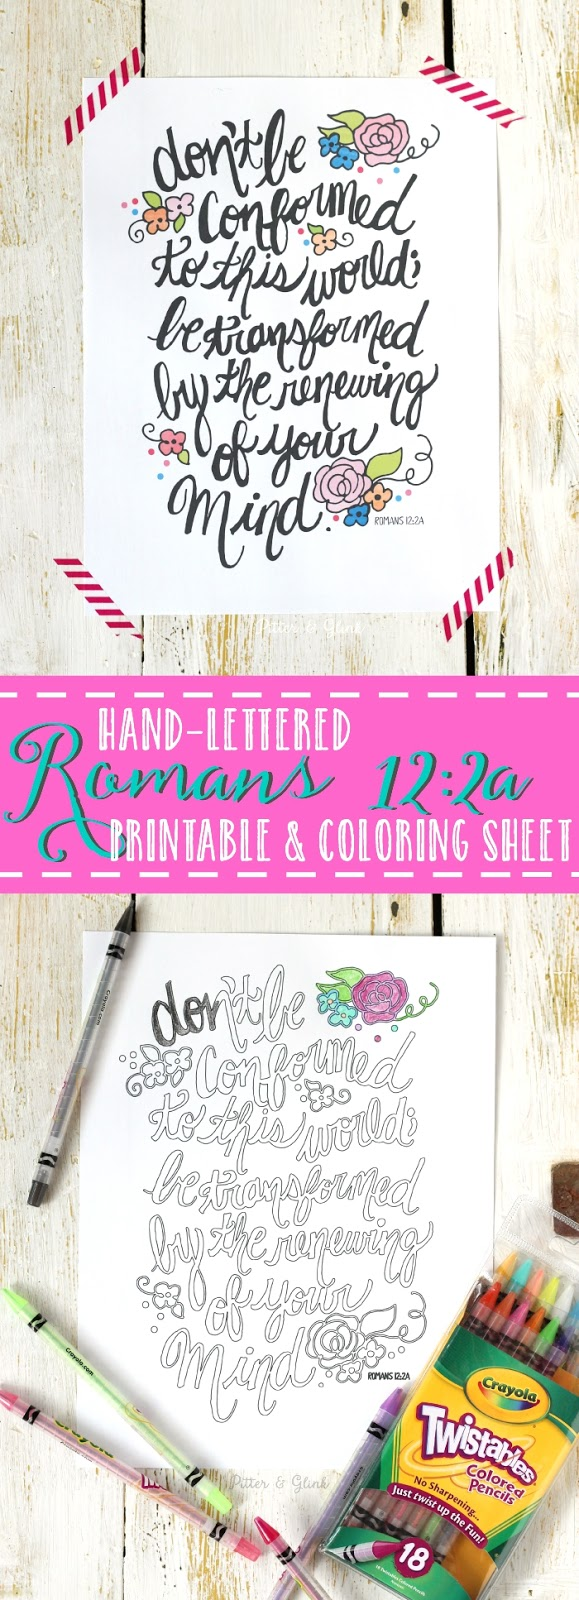 Free Romans 12 Hand-Lettered Bible Verse Printable and Coloring Page www.pitterandglink.com